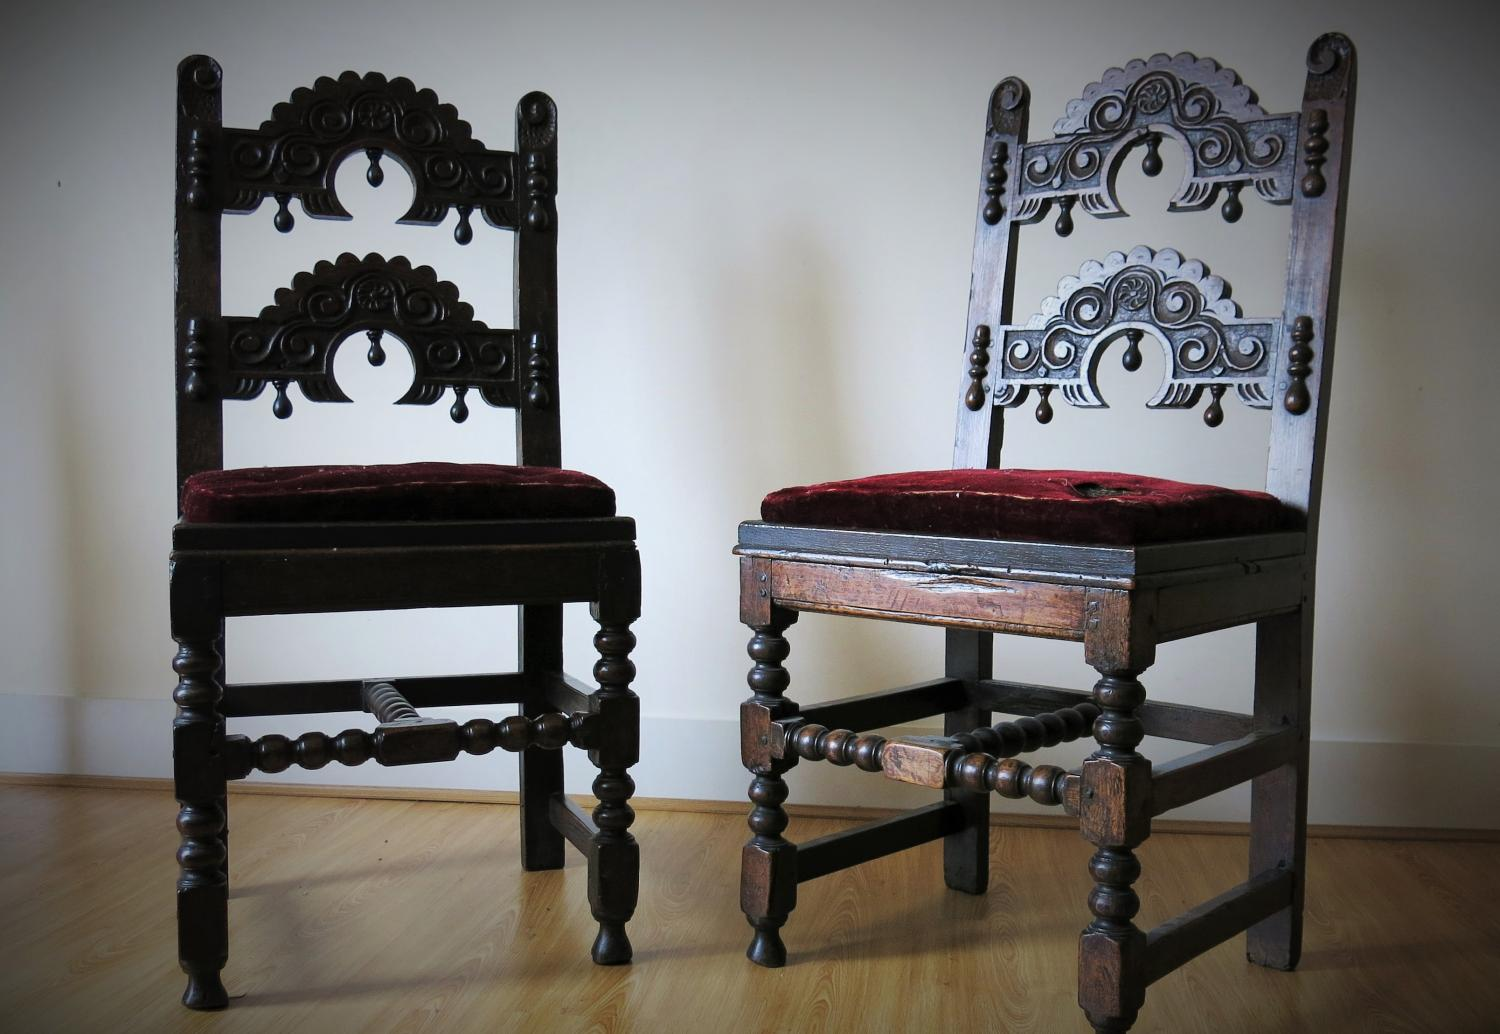 Chair table 17th century - 17th Century Yorkshire Derbyshire Oak Chairs